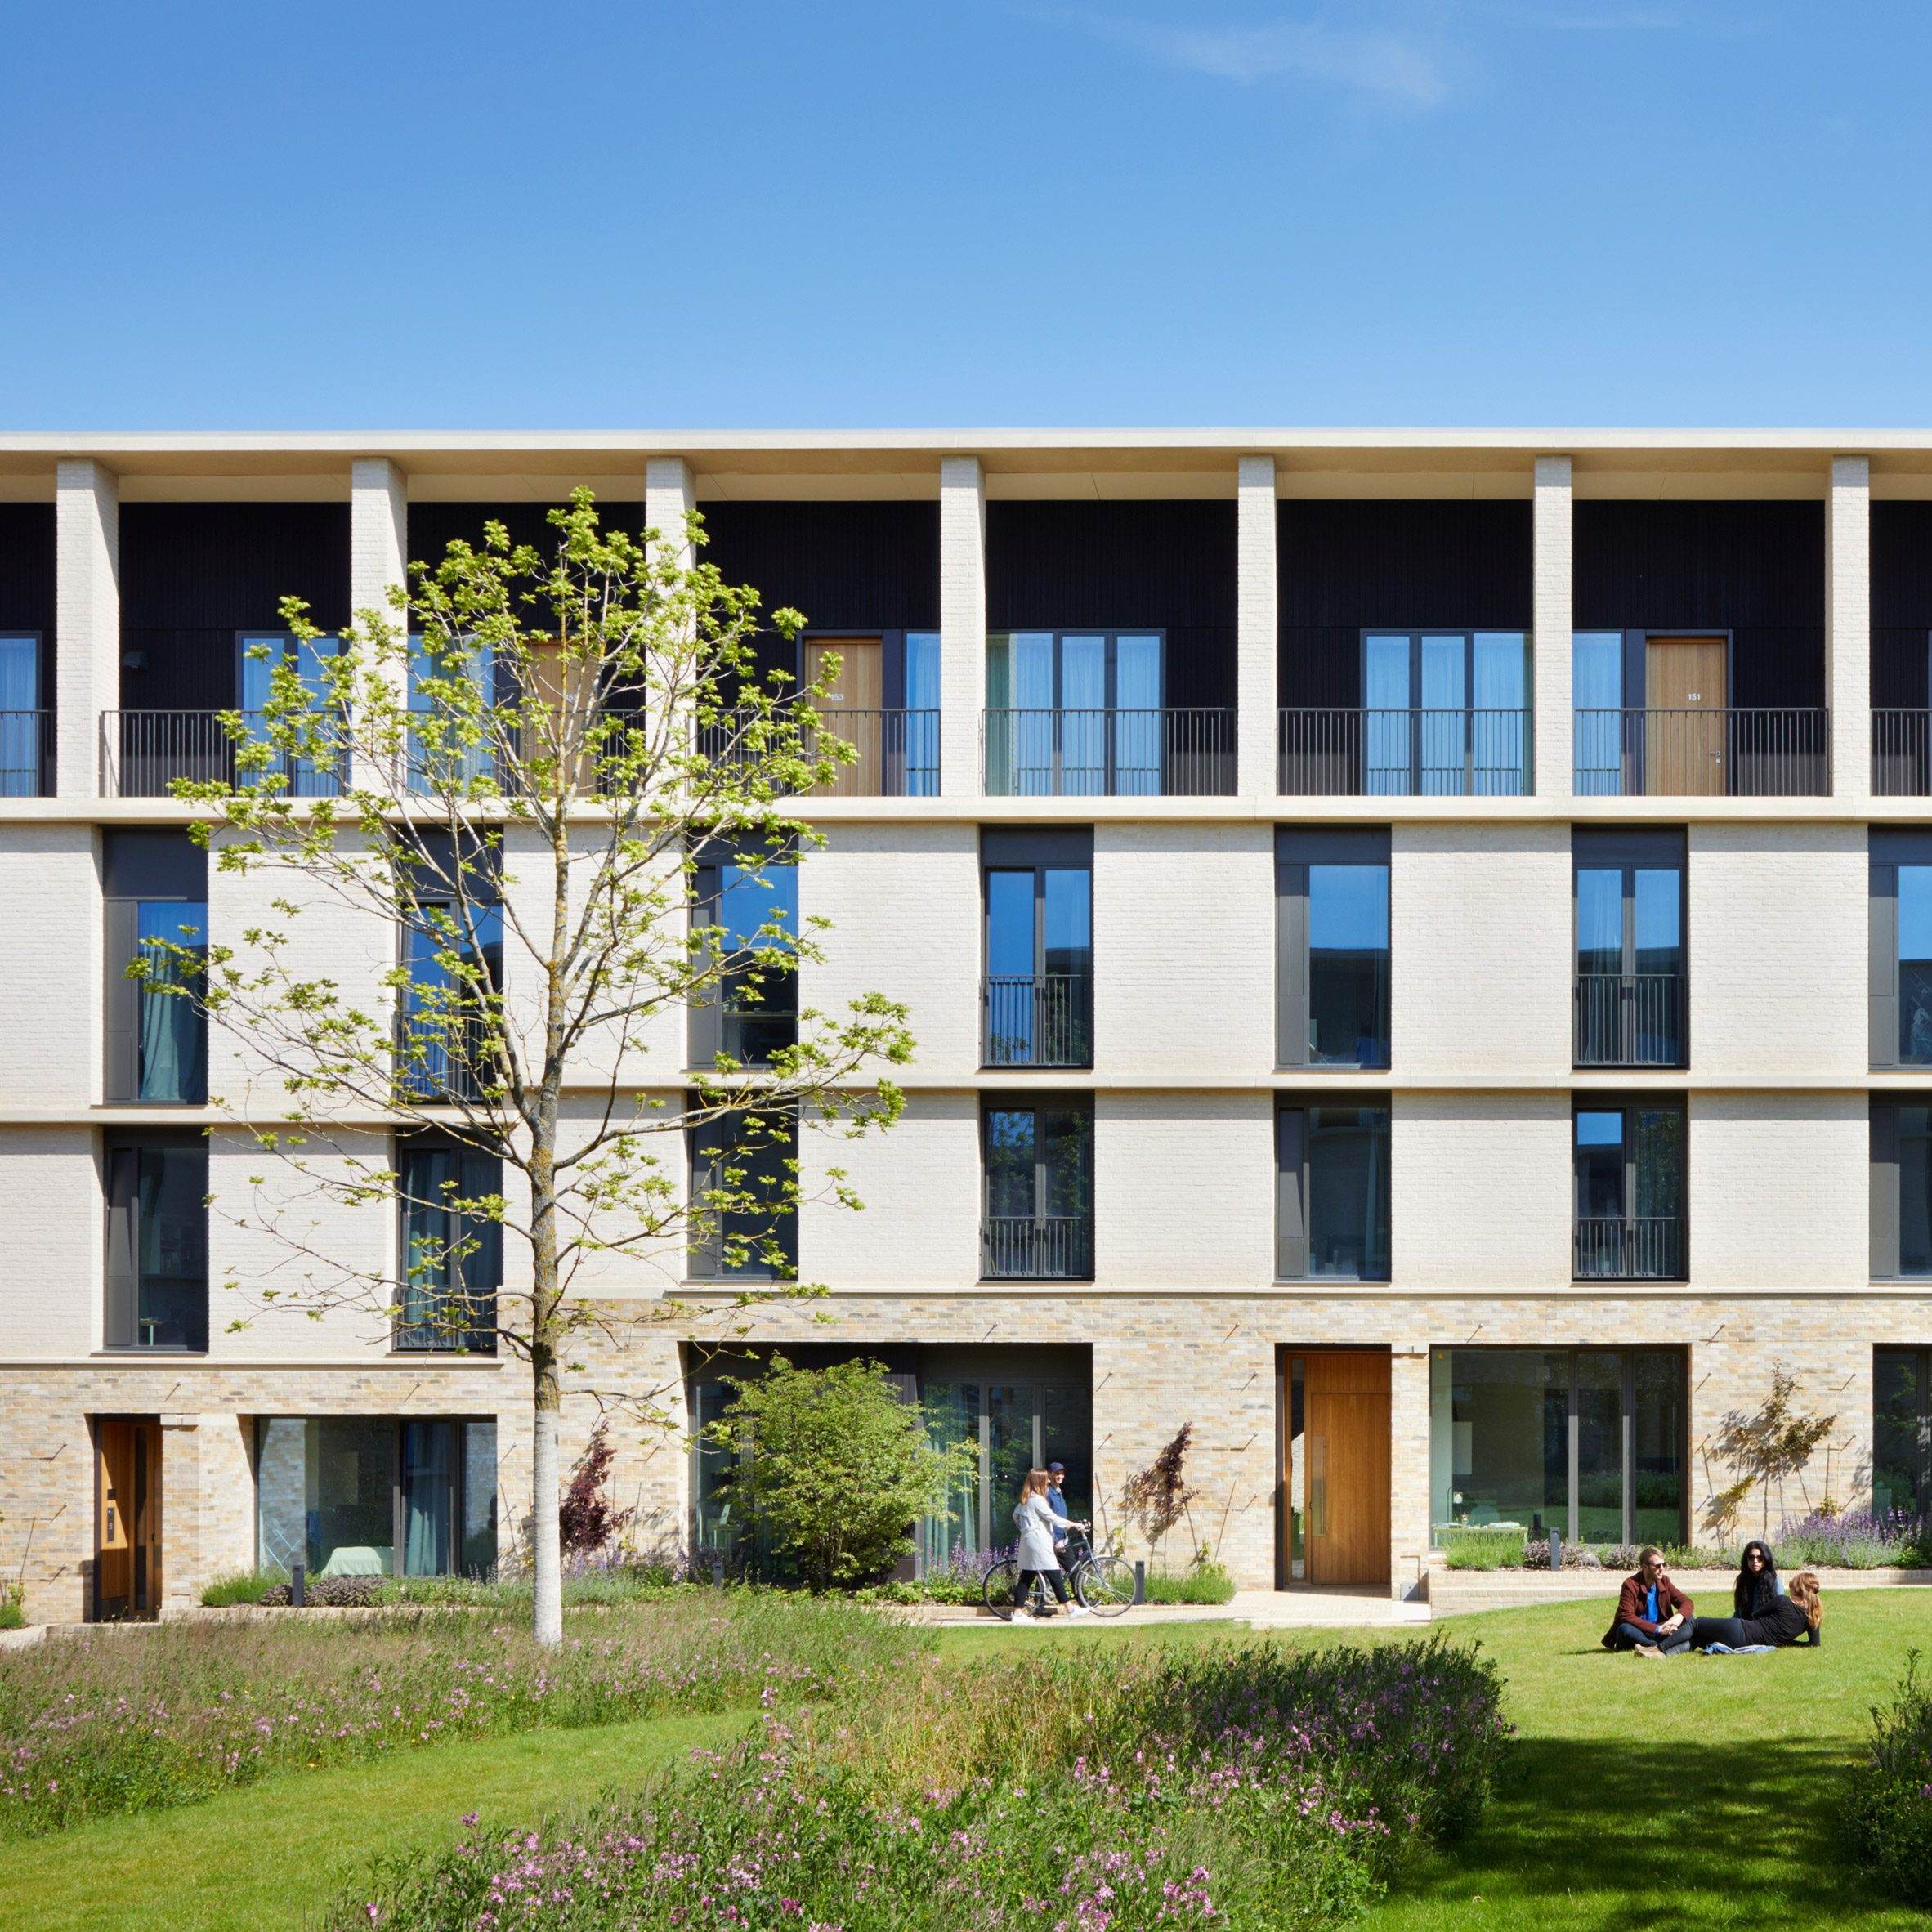 Stanton Williams draws on traditional urban layouts for Key Worker Housing in Cambridge